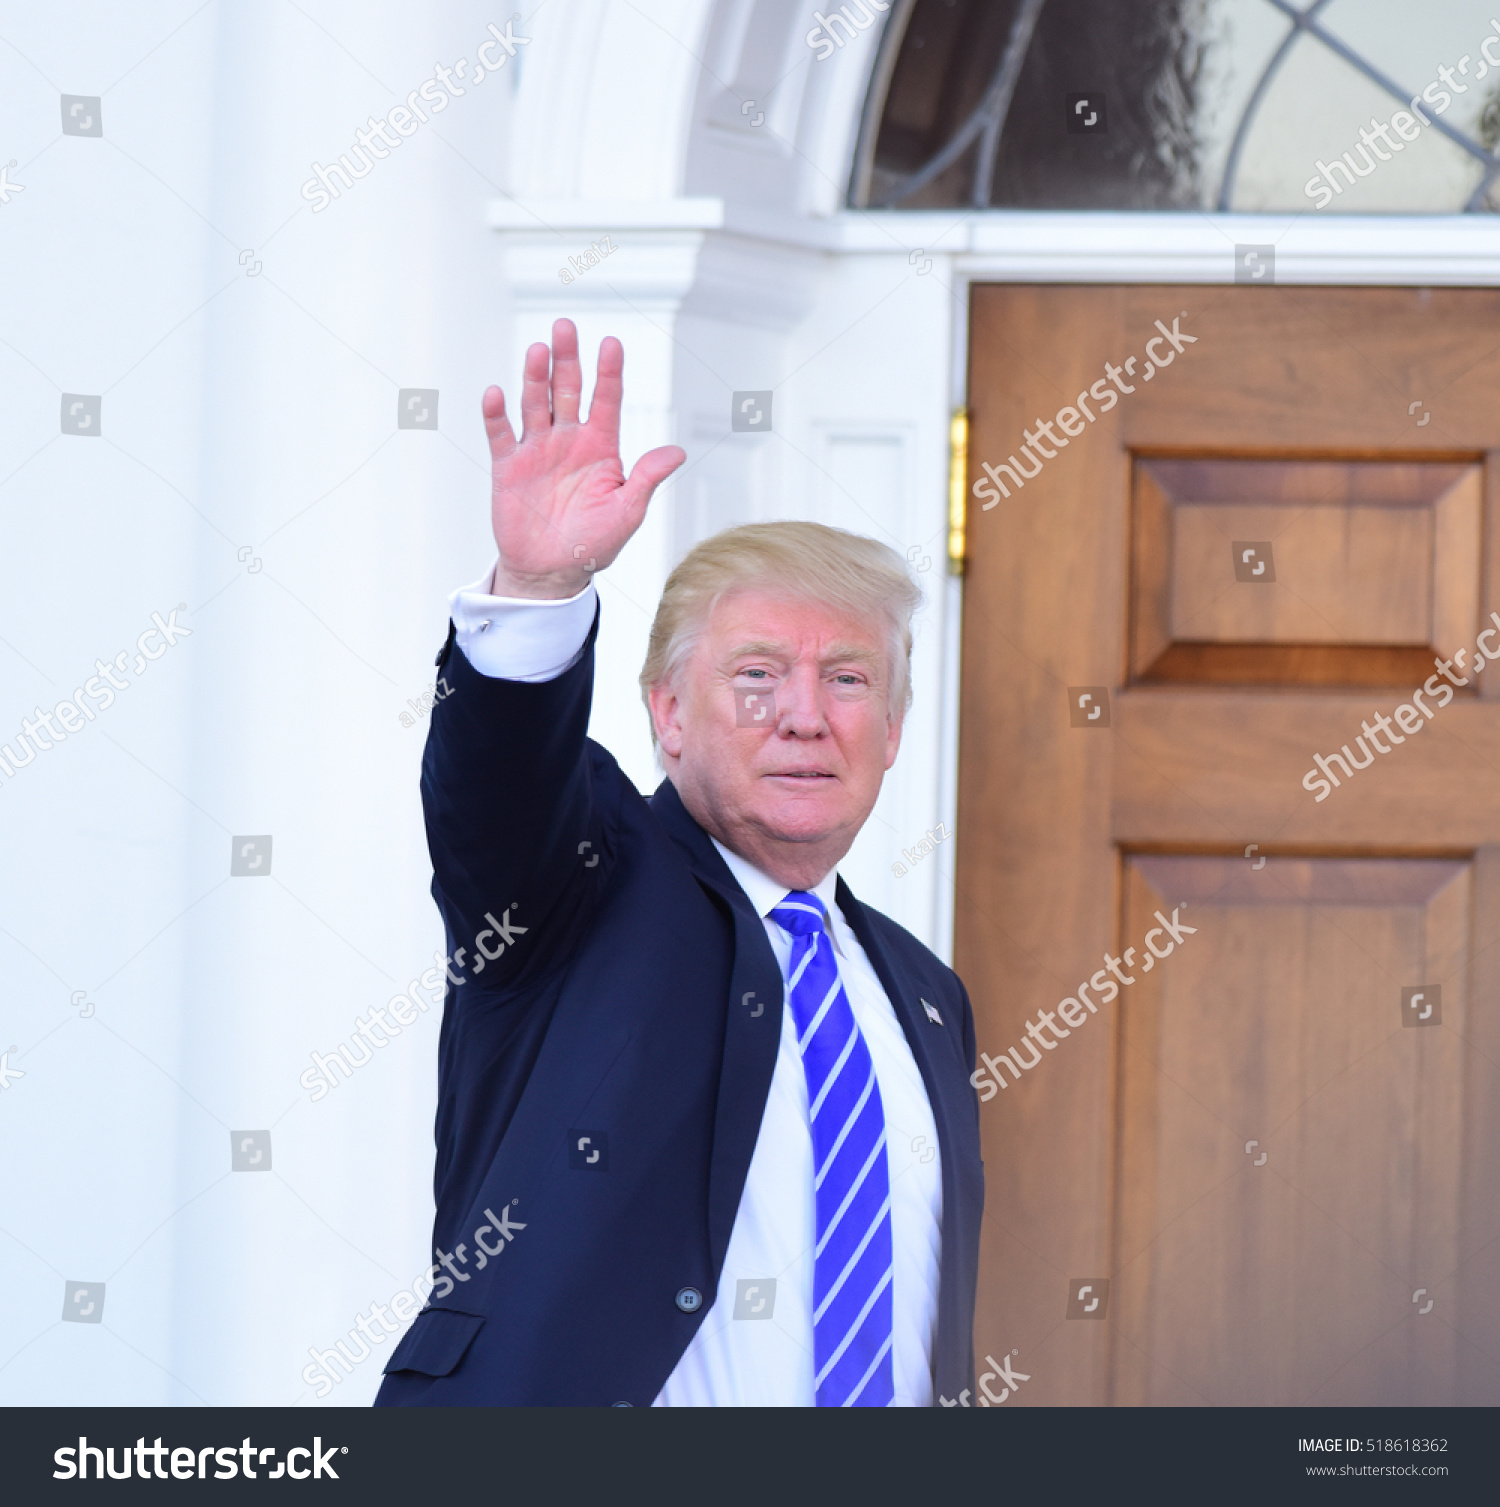 Bedminster new jersey 19 november 2016 stock photo for For how long do we elect the president